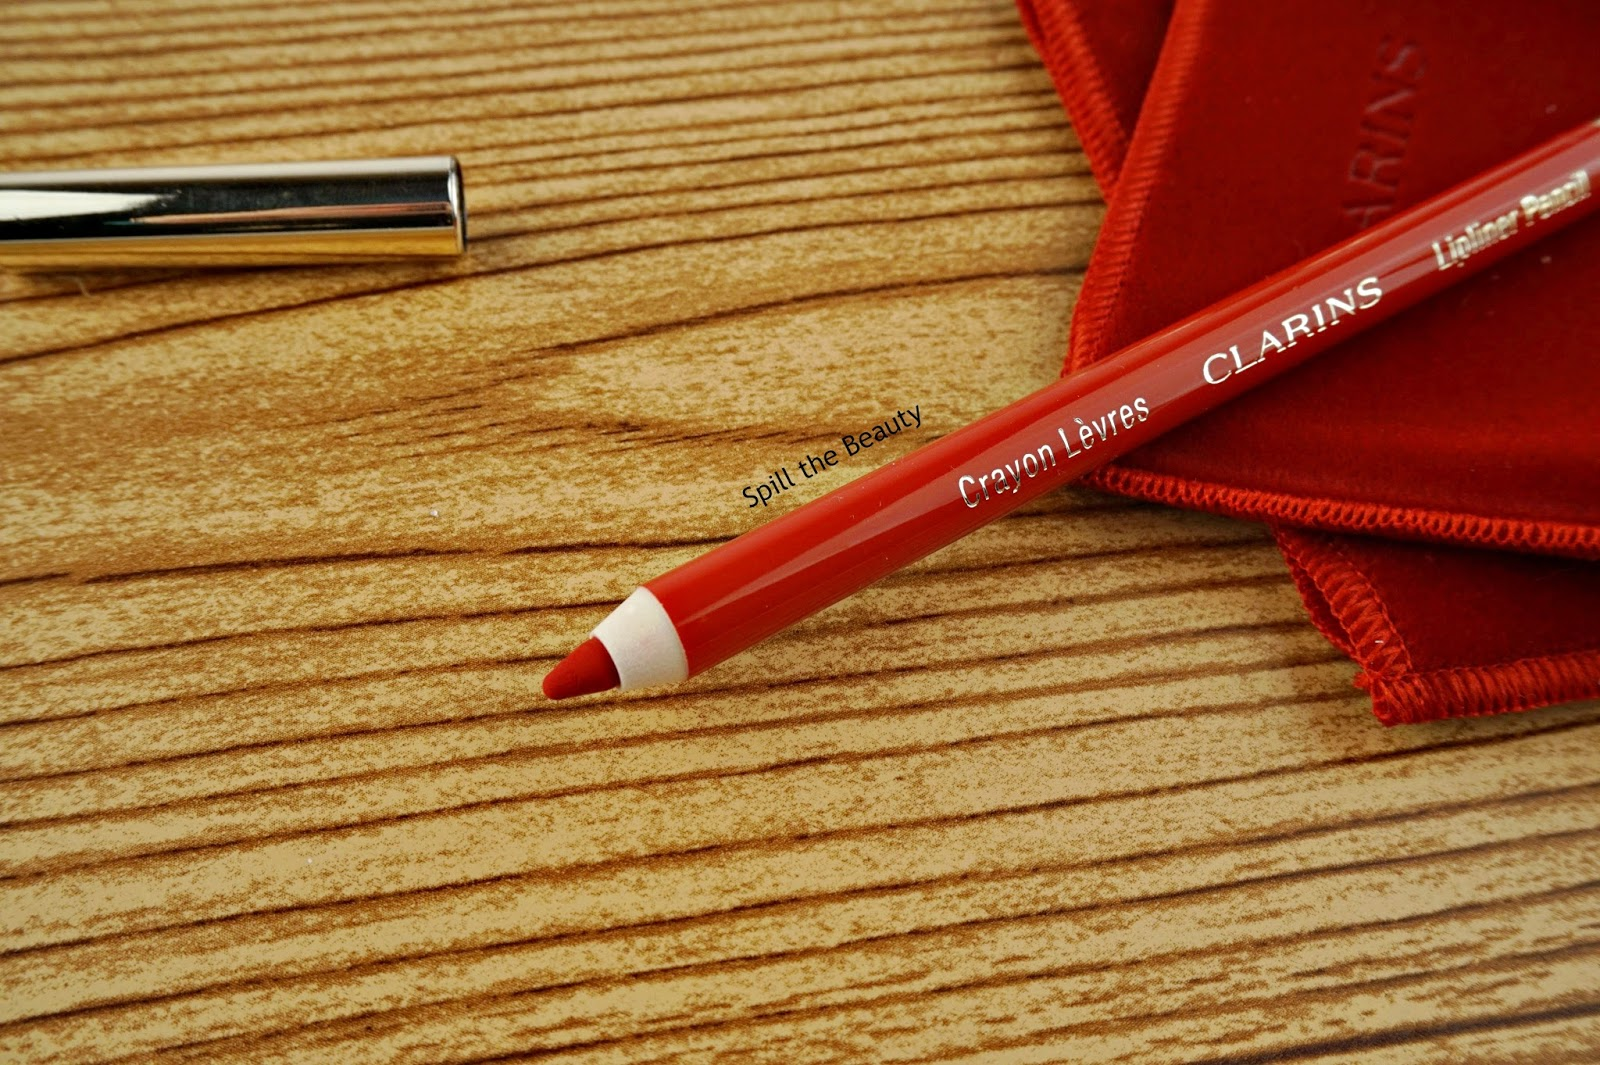 clarins fall 2017 review swatches joli rouge lipstick deep red litchi red lip liner